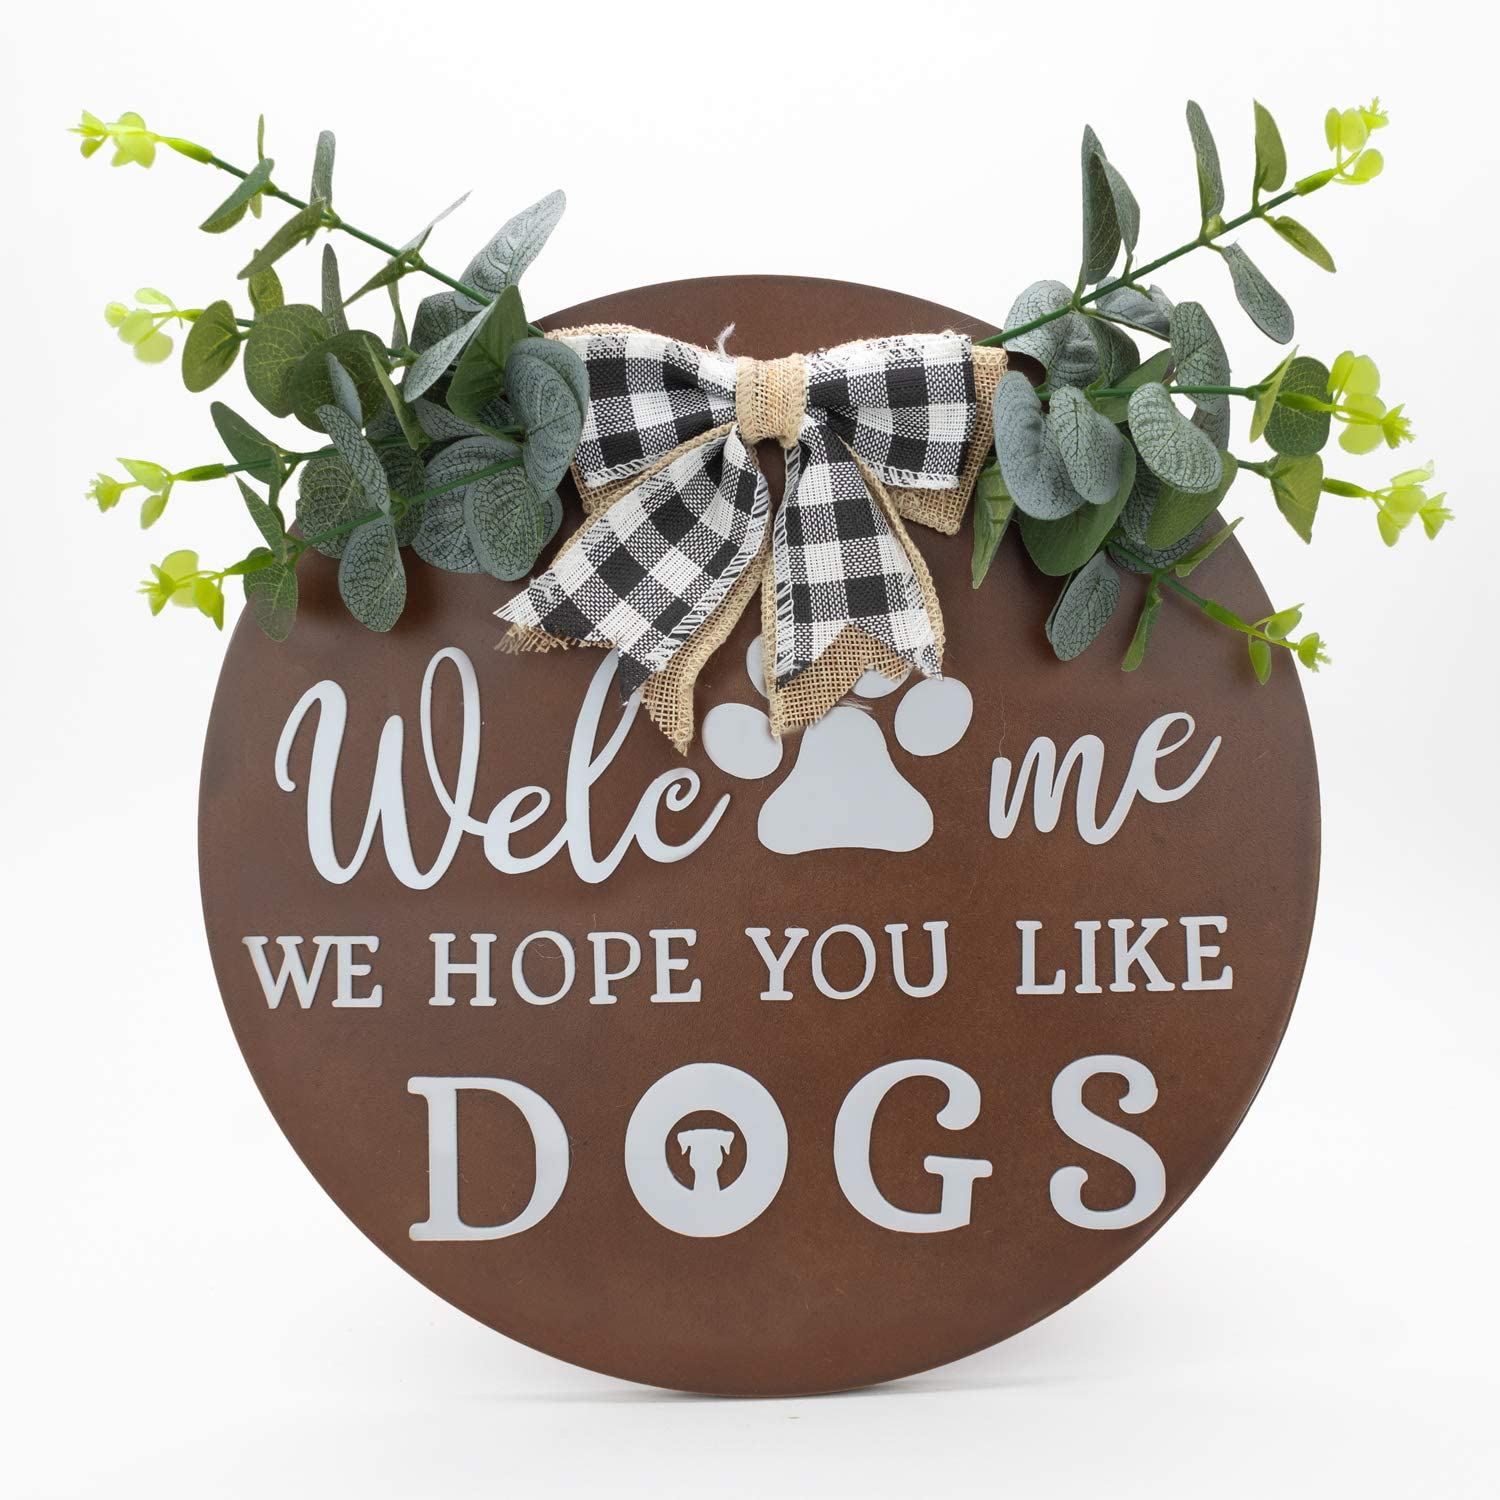 Welcome Sign   Welcome Sign For Front Door   Welcome Signs For Front Porch   Front Porch Decor   Porch Decor   Door Wreaths For Front Door Outside   Welcome We Hope You Like Dogs   US Brand